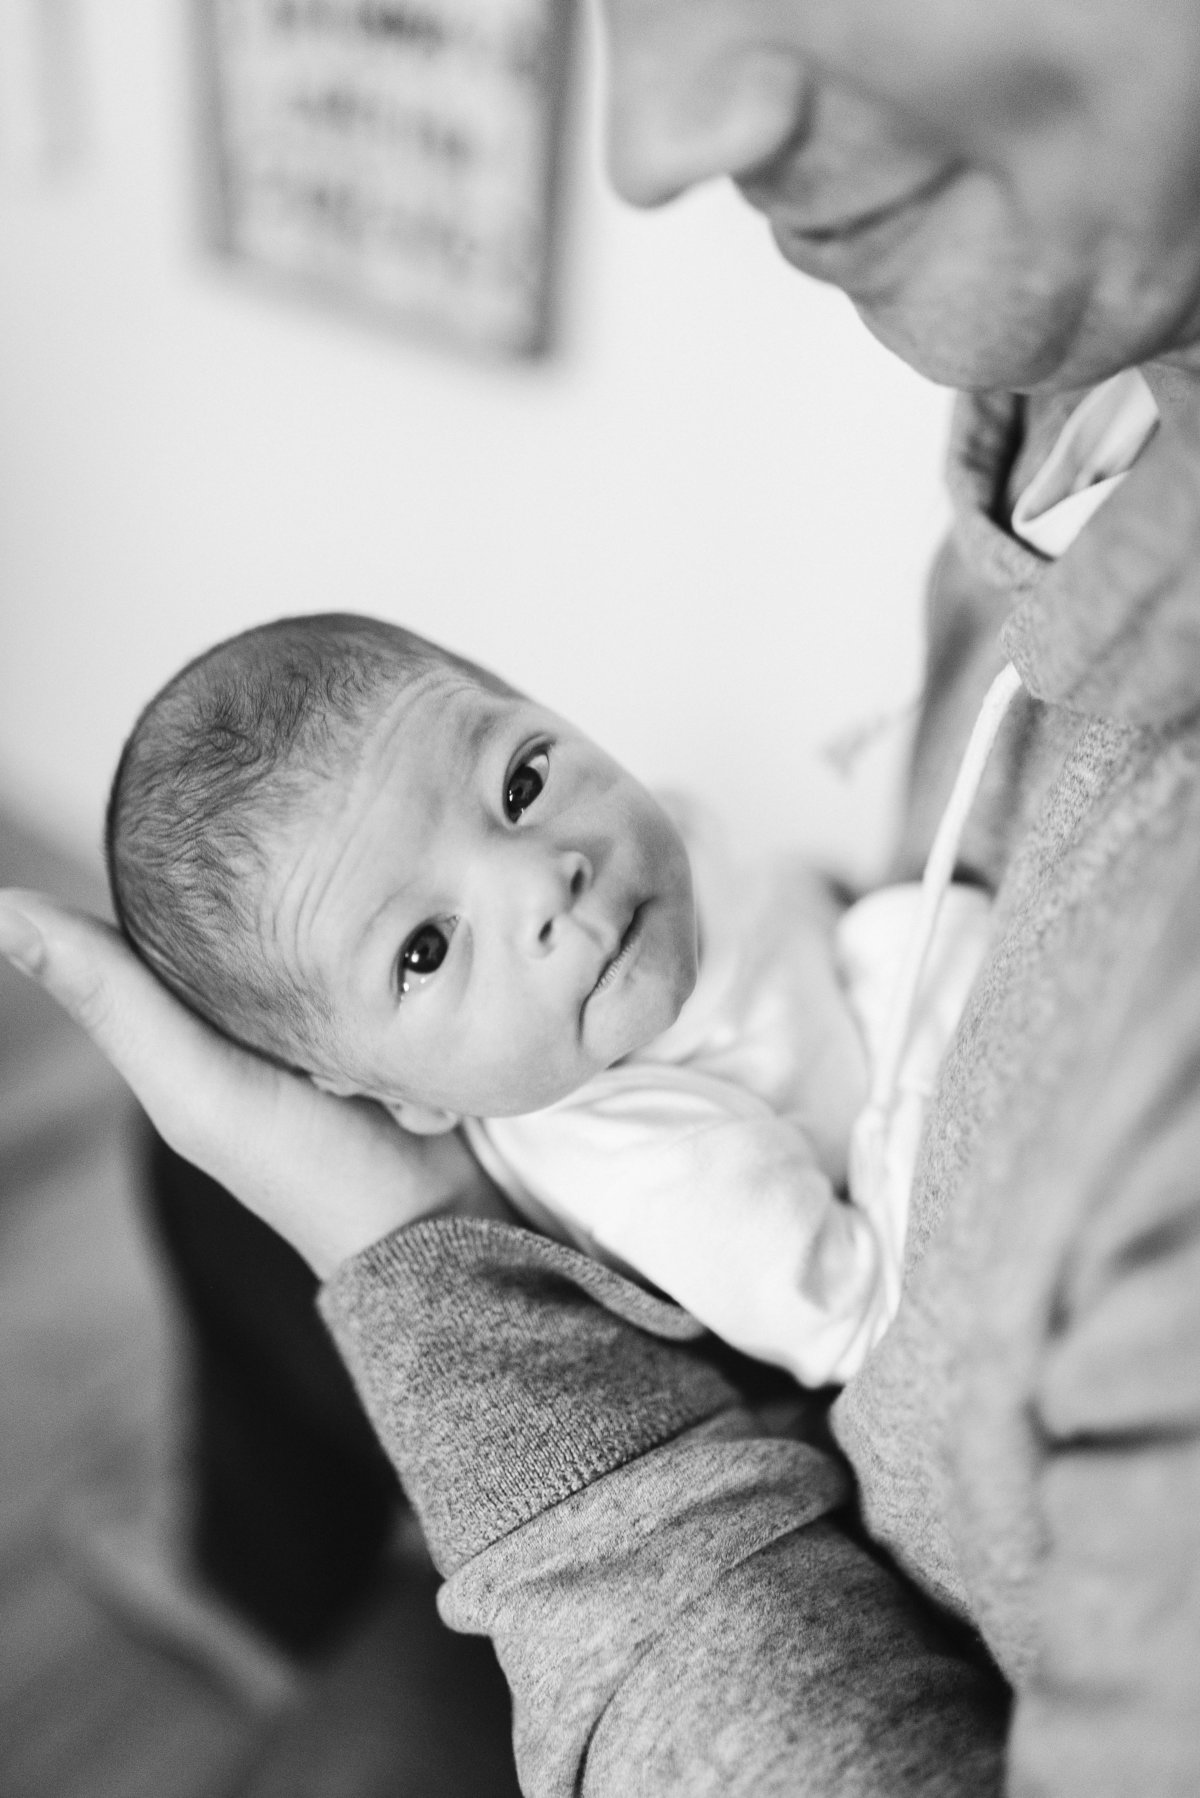 gallup-saratoga-albany-newborn-family-photography-laurenkirkham-photography-niskayuna-saratogasprings-upstateny--2